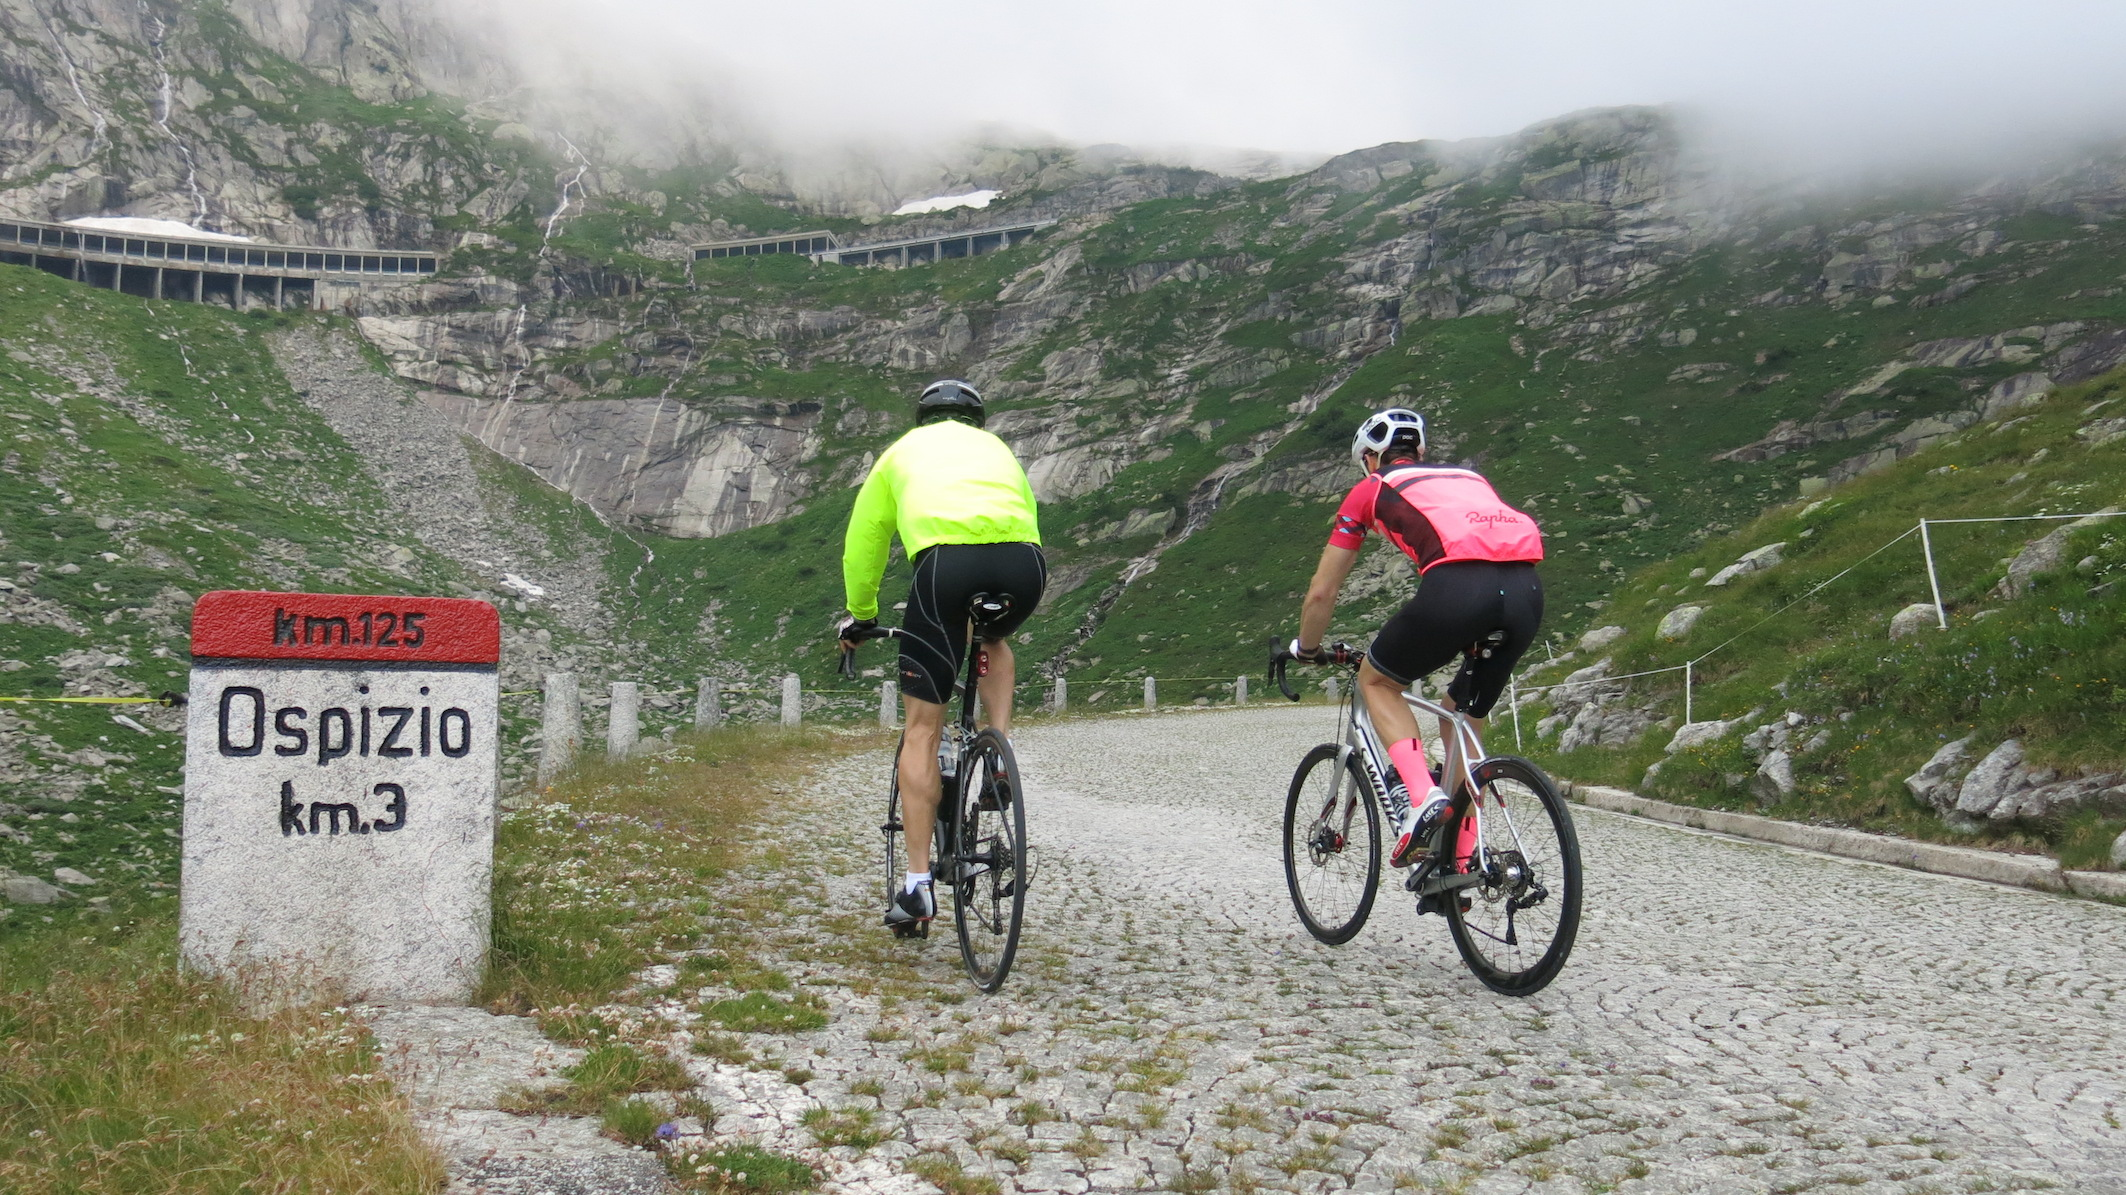 Tremolastrasse: every cyclist should climb this at least once in their life: Kev and SGL doing just that. Photo by Jimi Thomson.